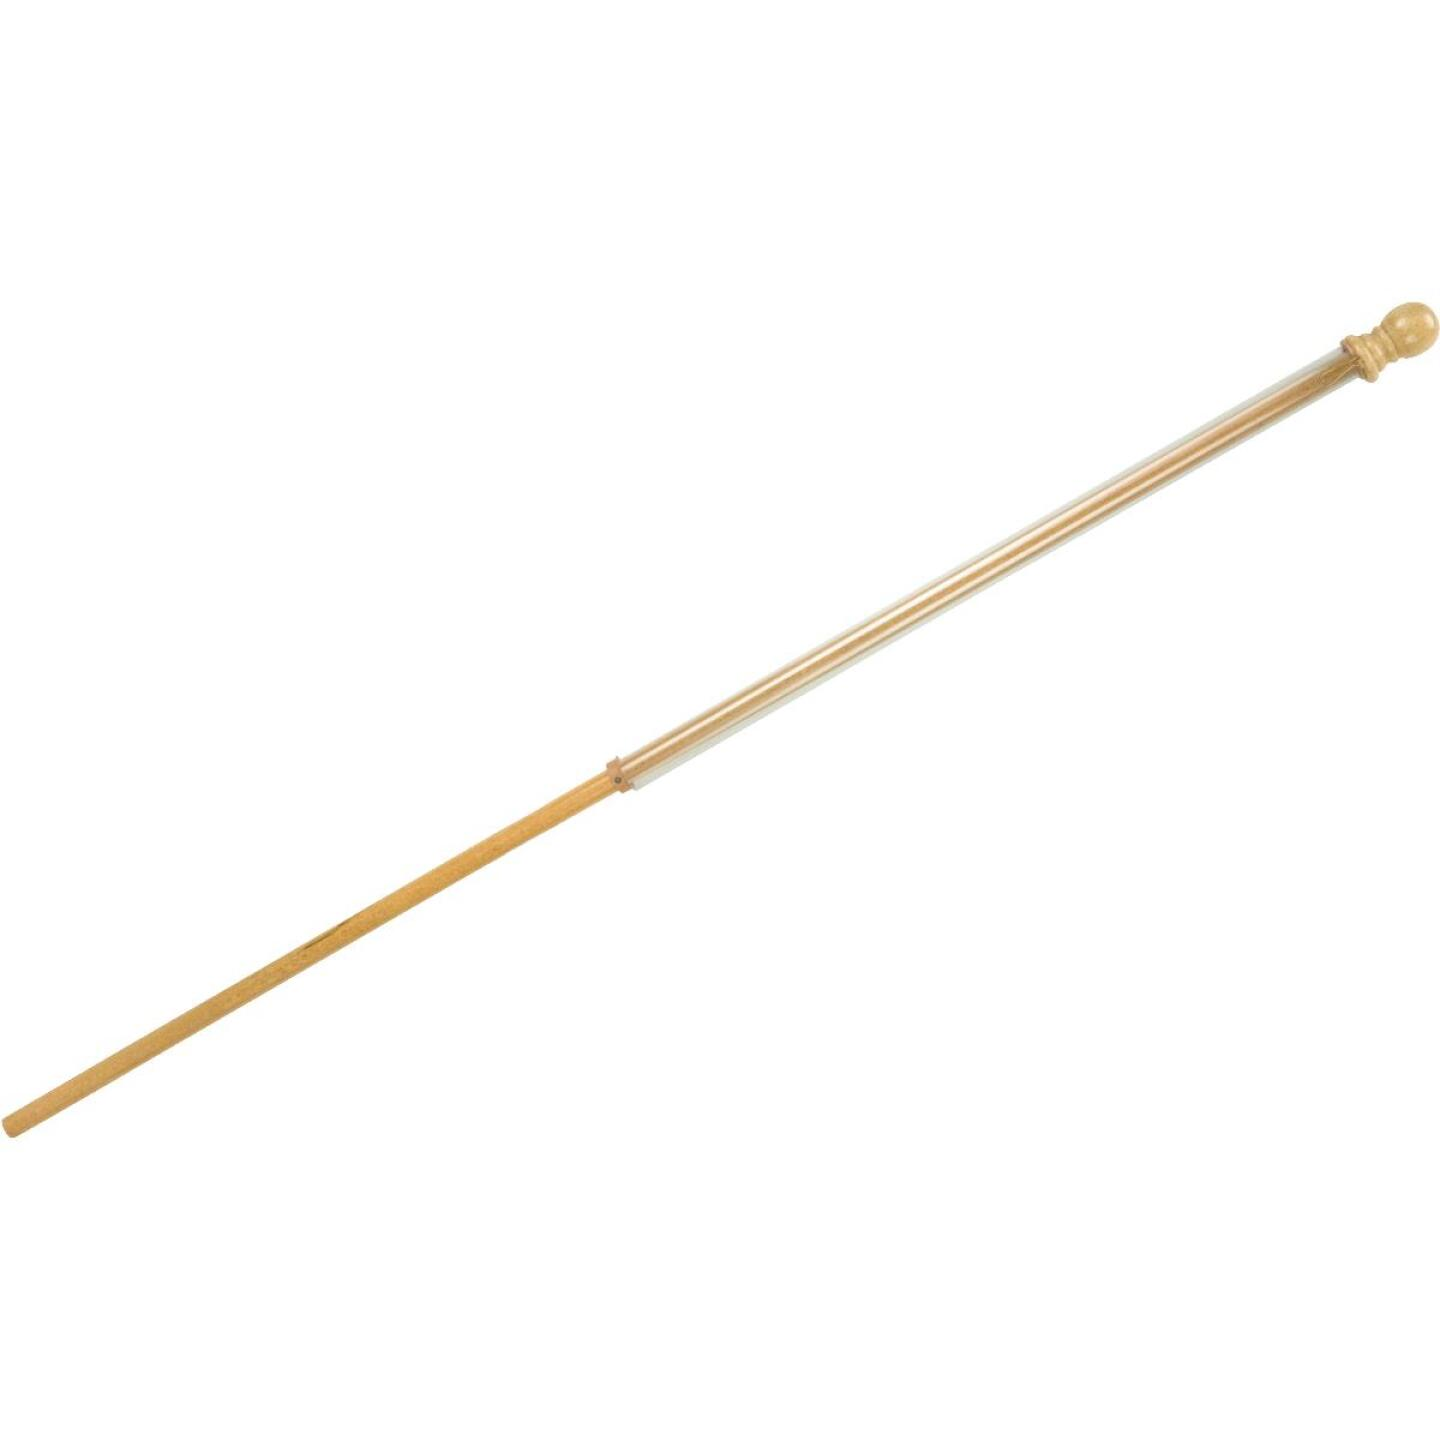 Evergreen 56 In. x 1 In. Wood Anti-Wrap Flag Pole Image 2